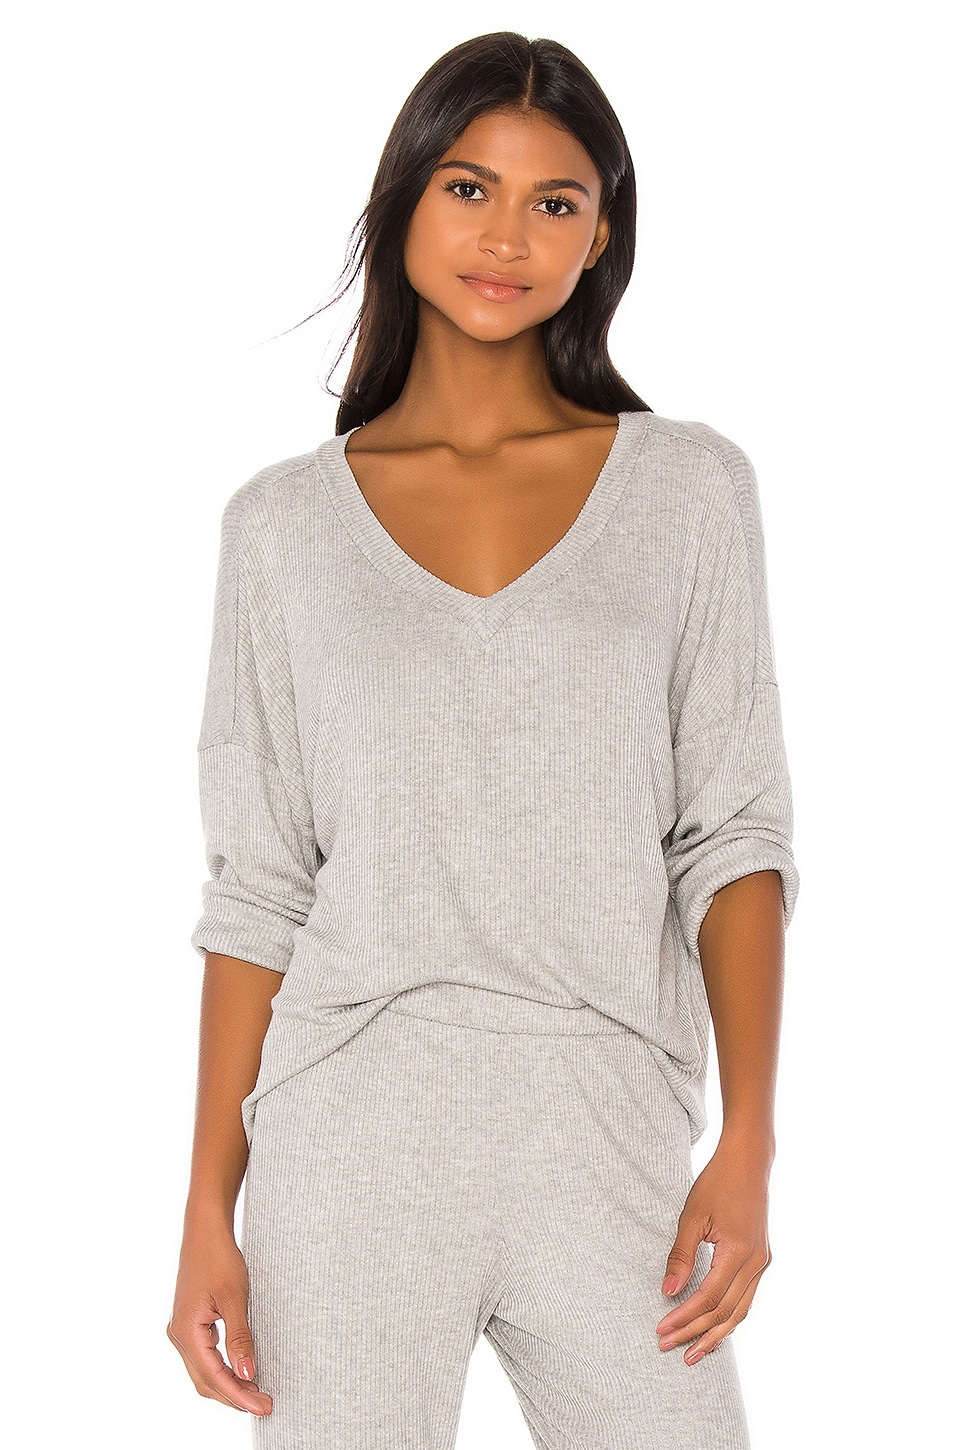 eberjey Elon V Neck Pullover in Heather Grey